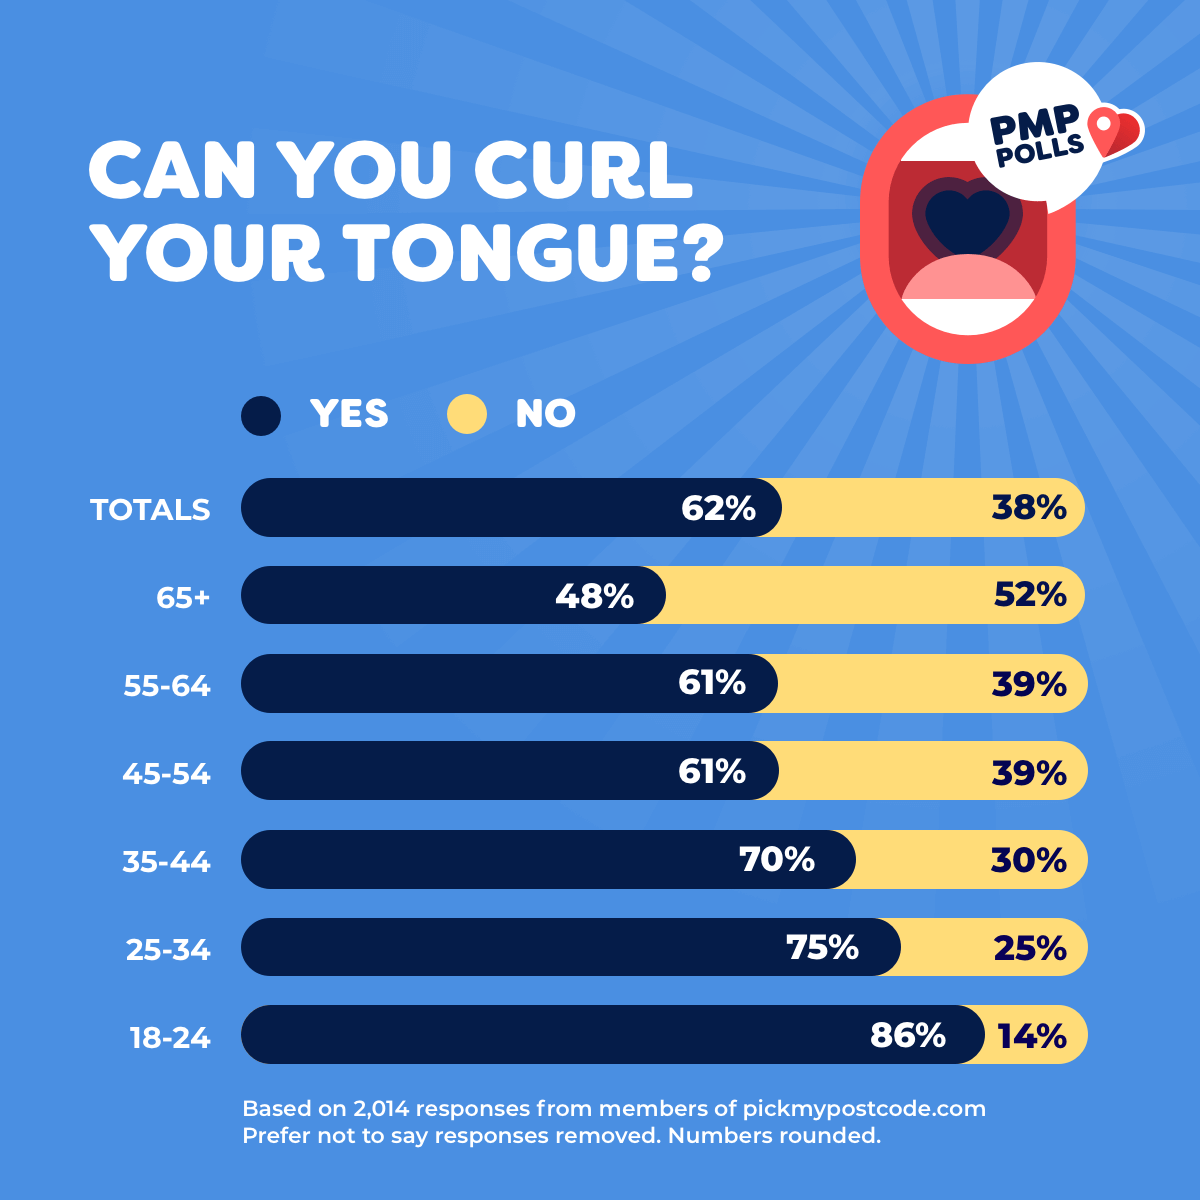 Can you curl your tongue? Yes: 62%. No: 38%